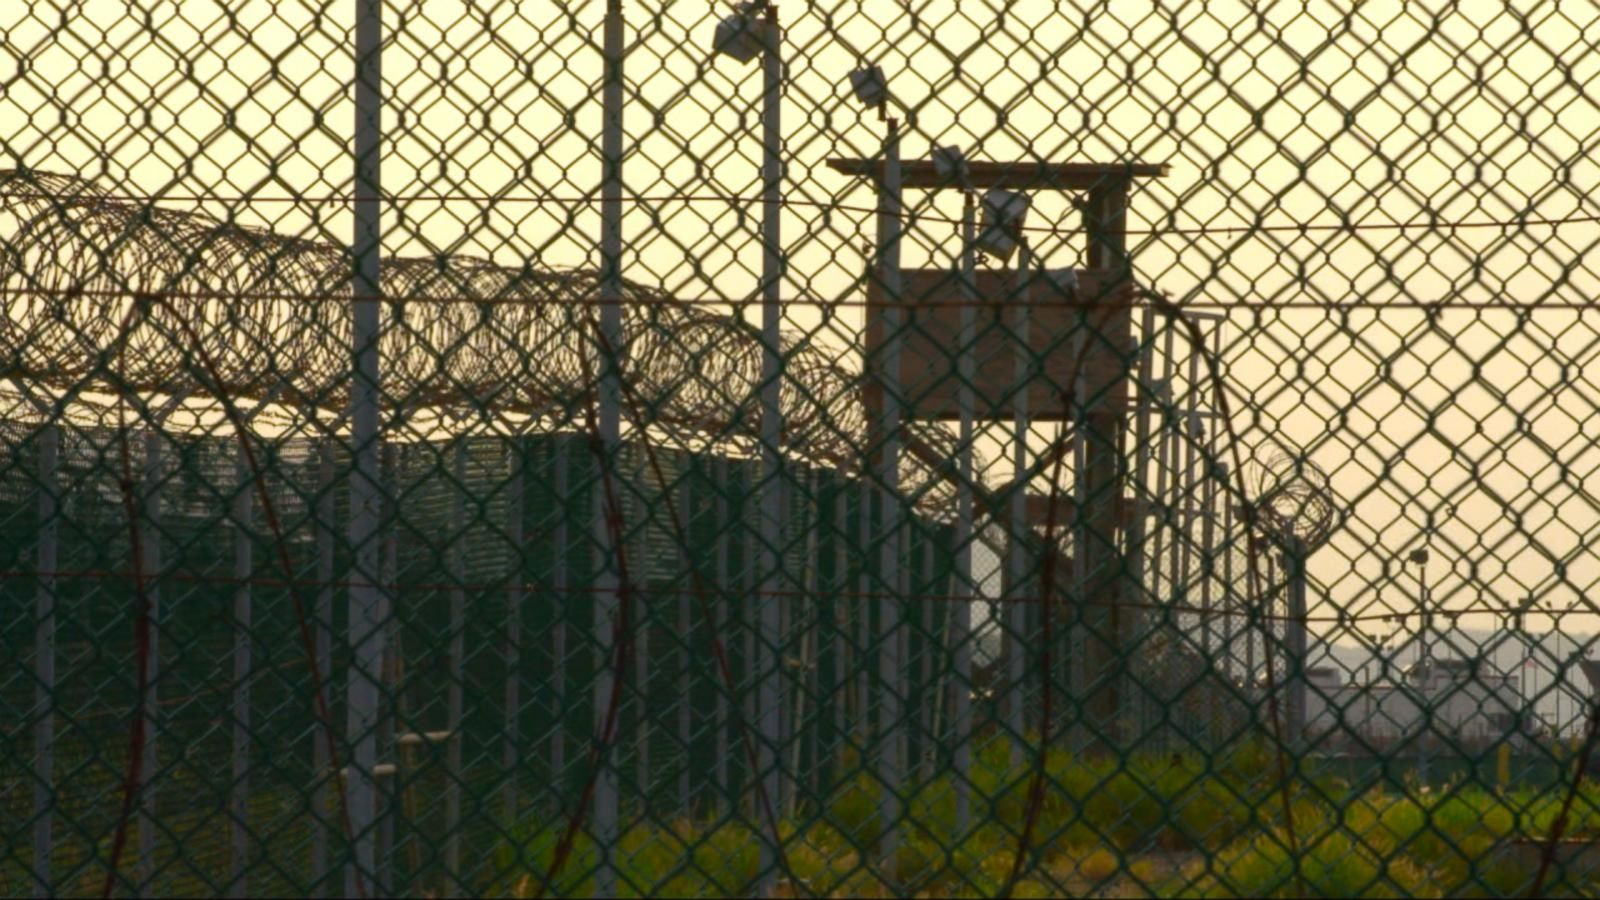 the effectiveness of guantanamo bay detention Un experts address concerns regarding guantÁnamo bay detainees (reissued as received) geneva, 23 june (un information service) -- the following statement was issued.